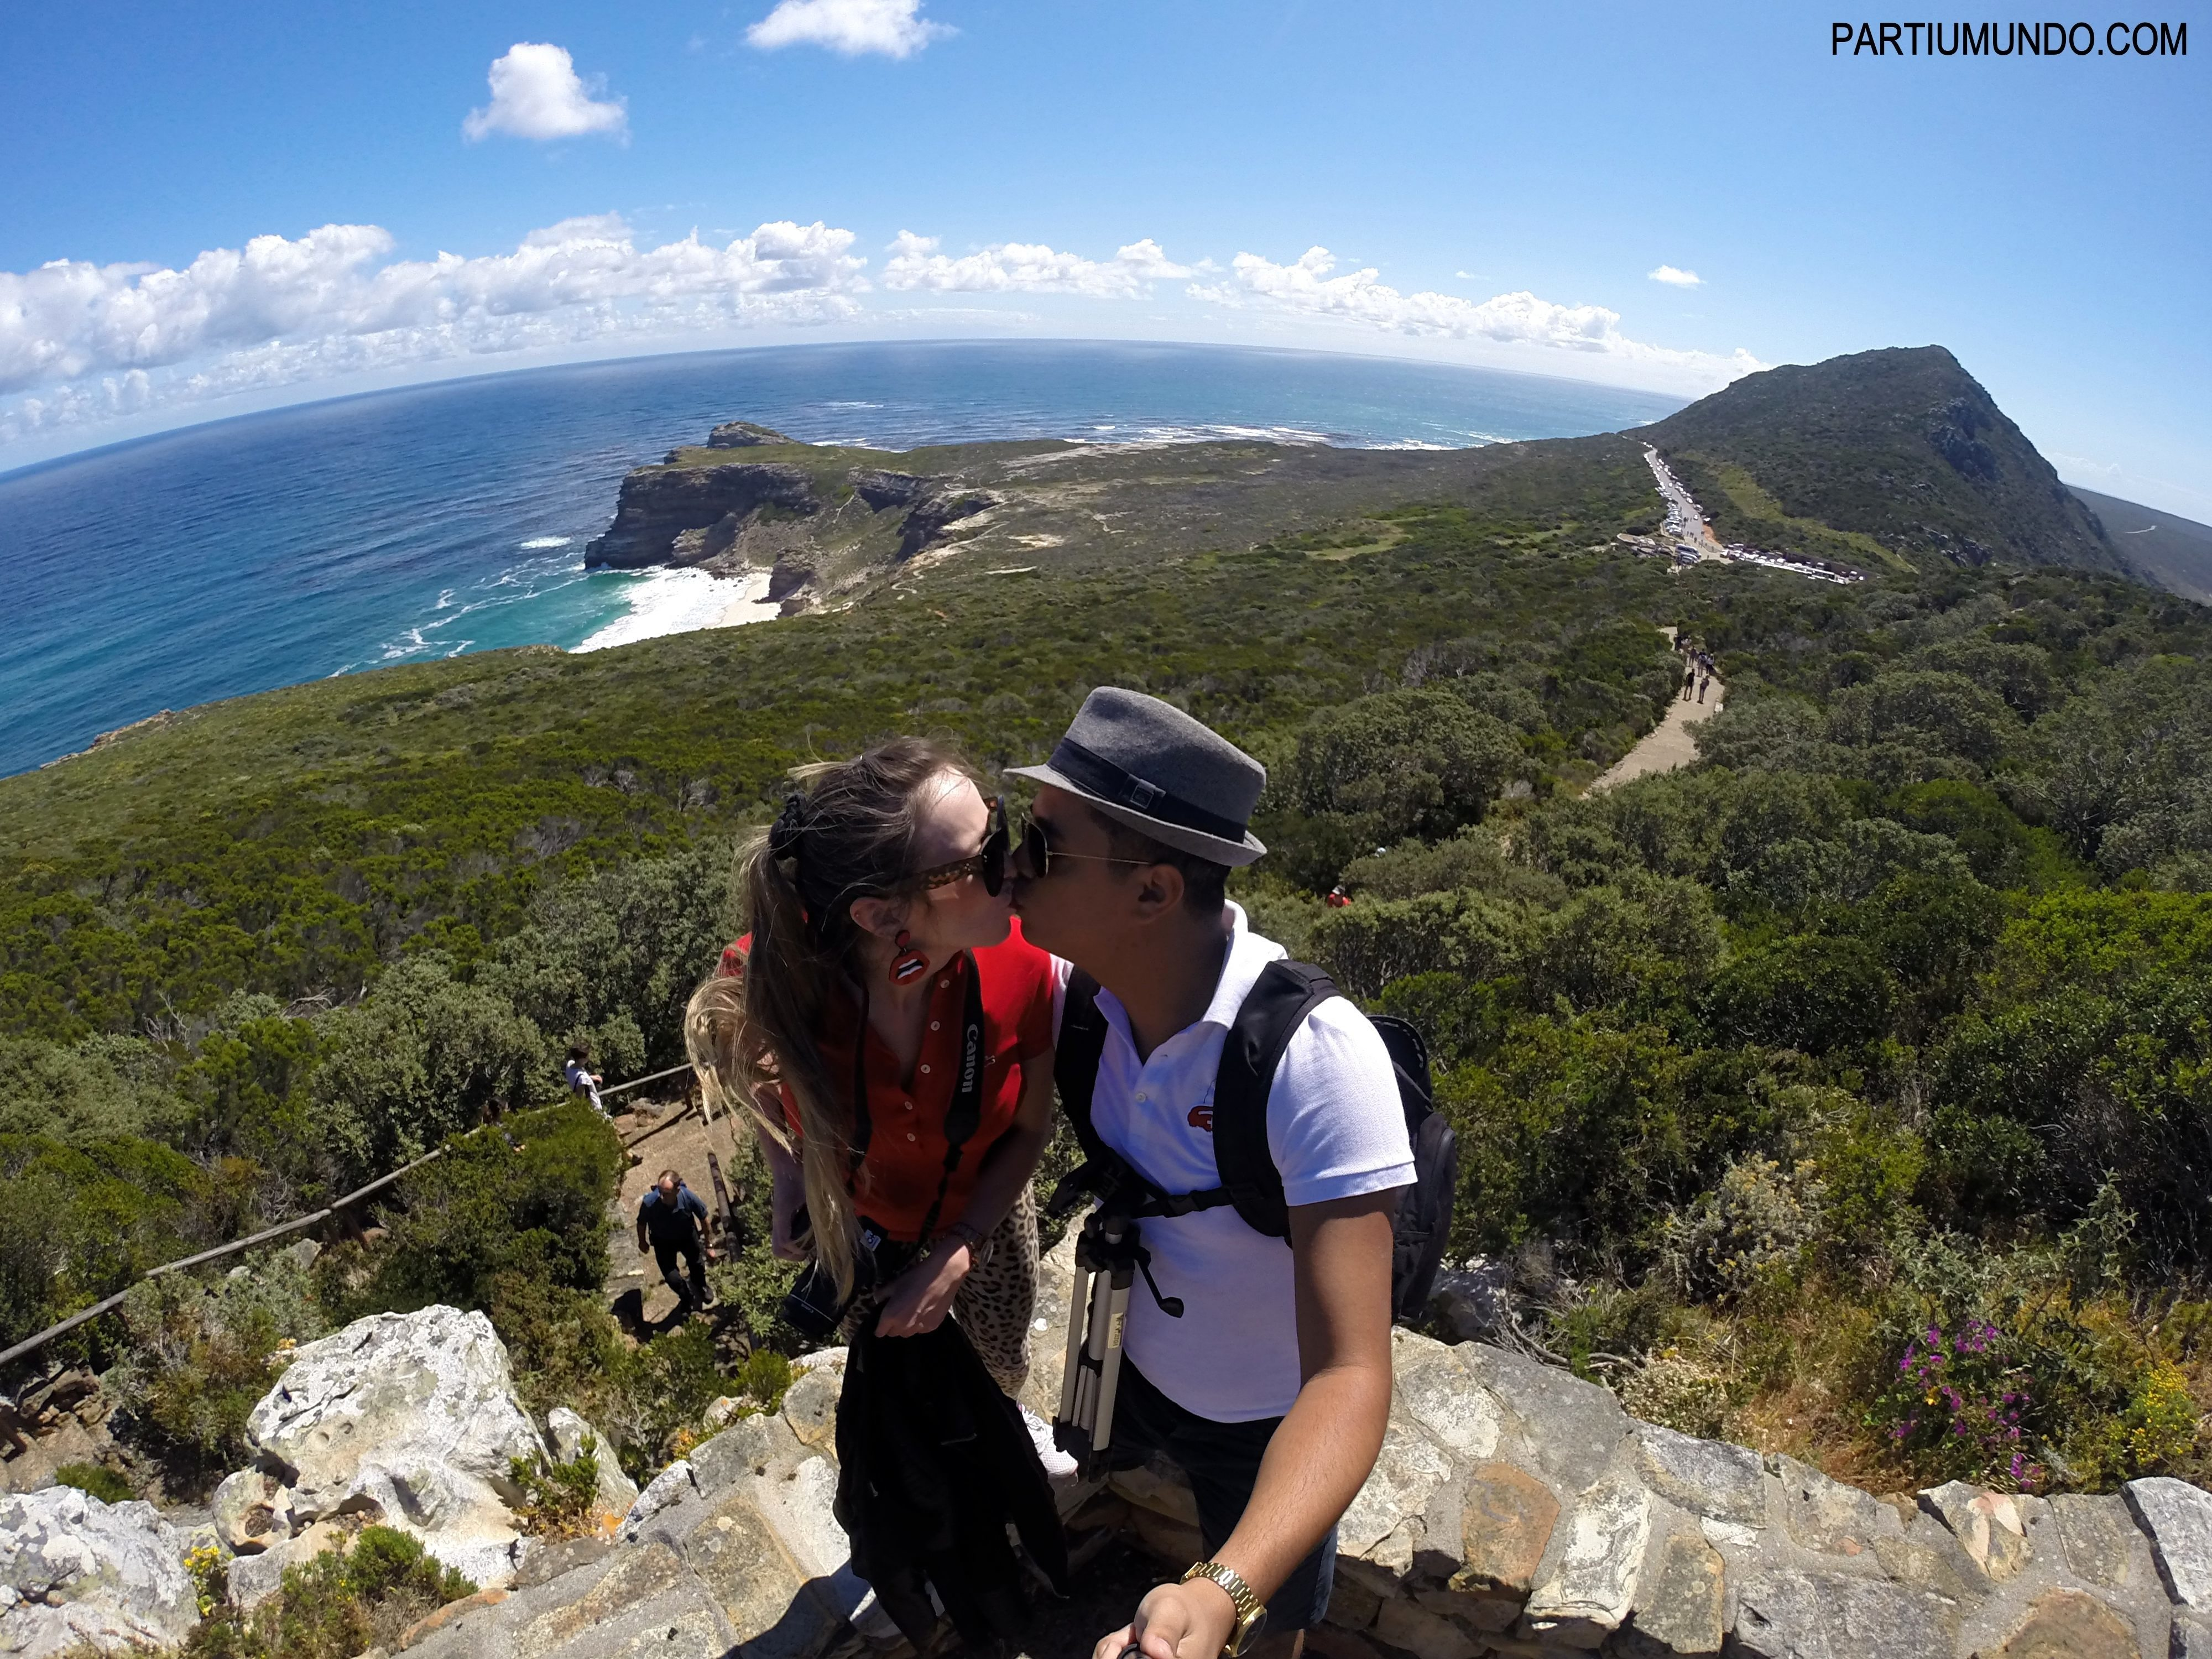 rsz_cape_of_good_hope_and_cape_point_28